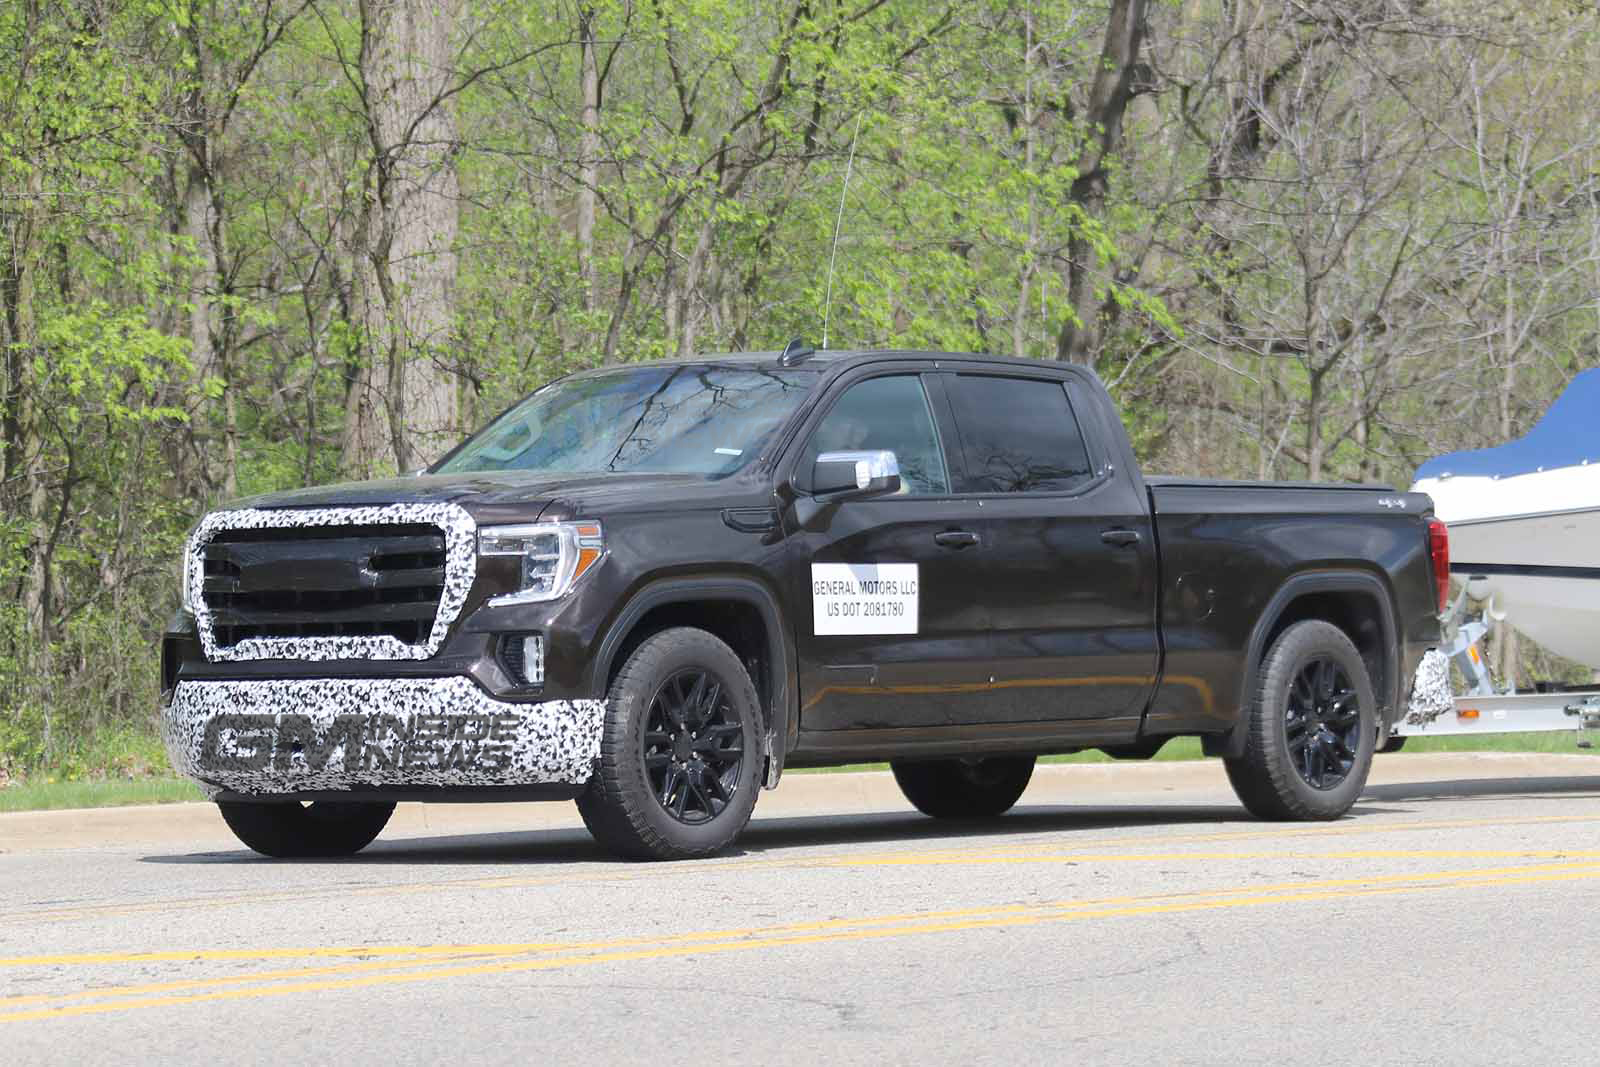 Gmc Terrain Denali For Sale >> 2020 GMC Sierra Denali 2500 HD Crew Cab Spied for the First Time - GM Inside News